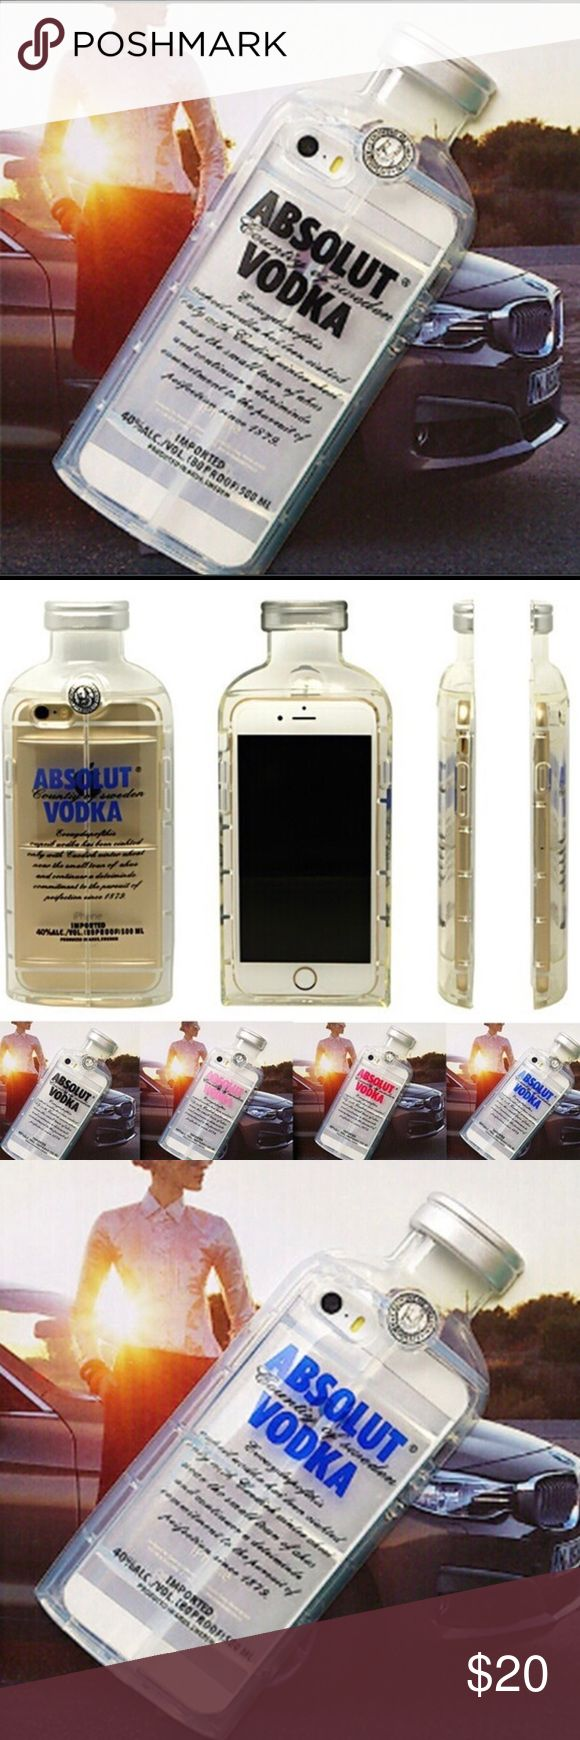 "iPhone 6/6S Absolut Vodka Cell Phone Case Coming Soon – Once Available for Purchase, Status Will Be Changed To ""For Sale"" and ""Likers"" Will Be Notified - Offers Not Accepted On Most Boutique Items As I Price As Low As I Can Go BUT Boutique Items Are Eligible for My Bundle Discount - Thank You!  Silicone Bumper Case ~ Available for iPhone 6 and iPhone 6S ~ 4 Different Colors ~ Boutique Accessories Phone Cases"